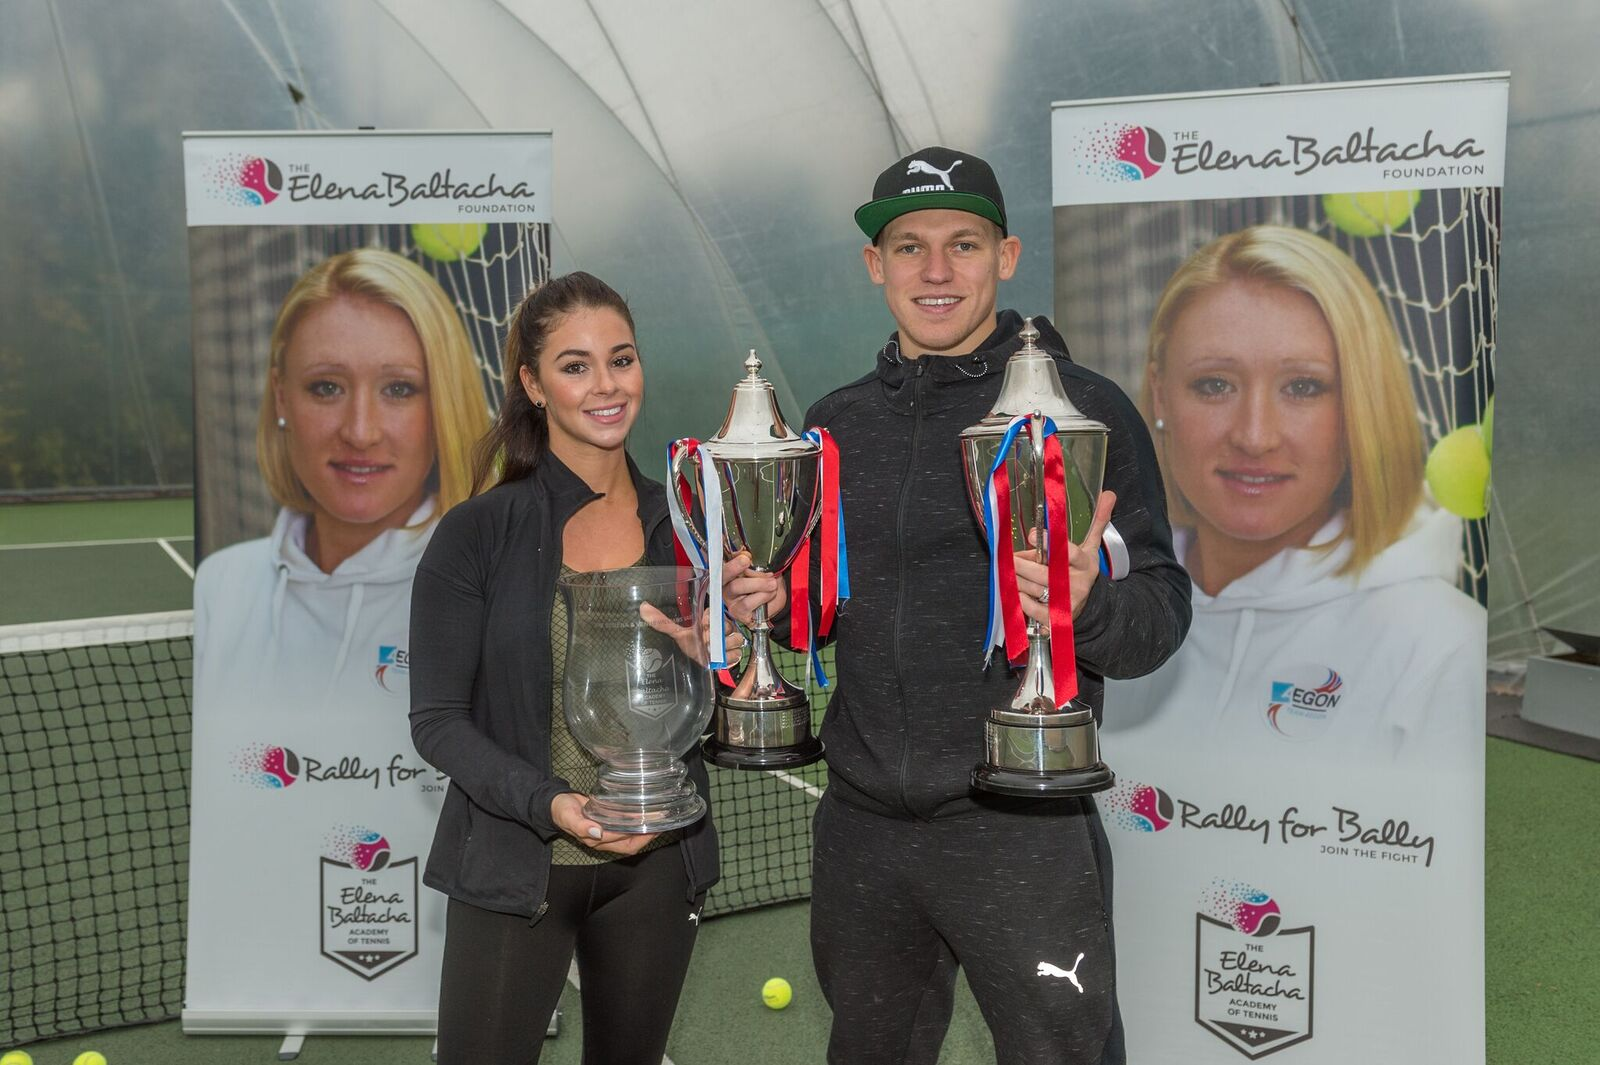 Martyn Waghorn and wife Leoni with the trophies they handed out to winners at the Elena Baltacha Foundation's 2017 annual awards ceremony.